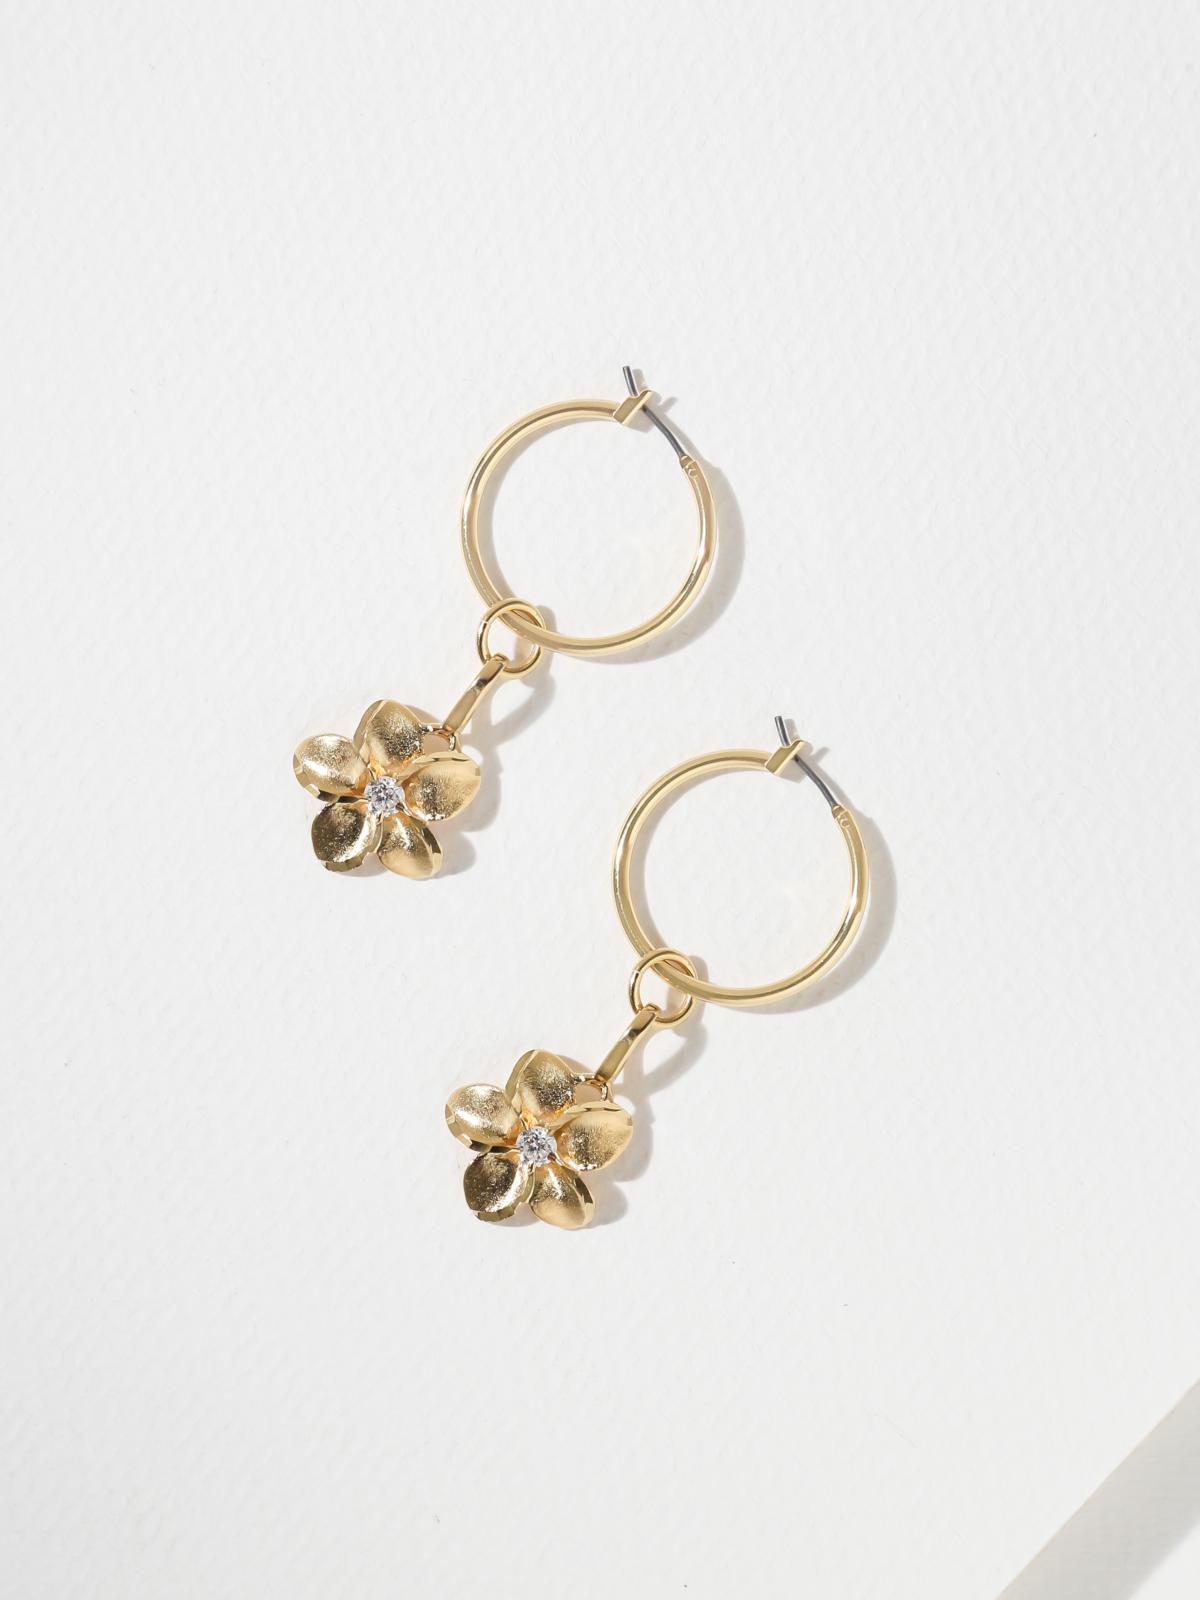 The Oasis Earrings